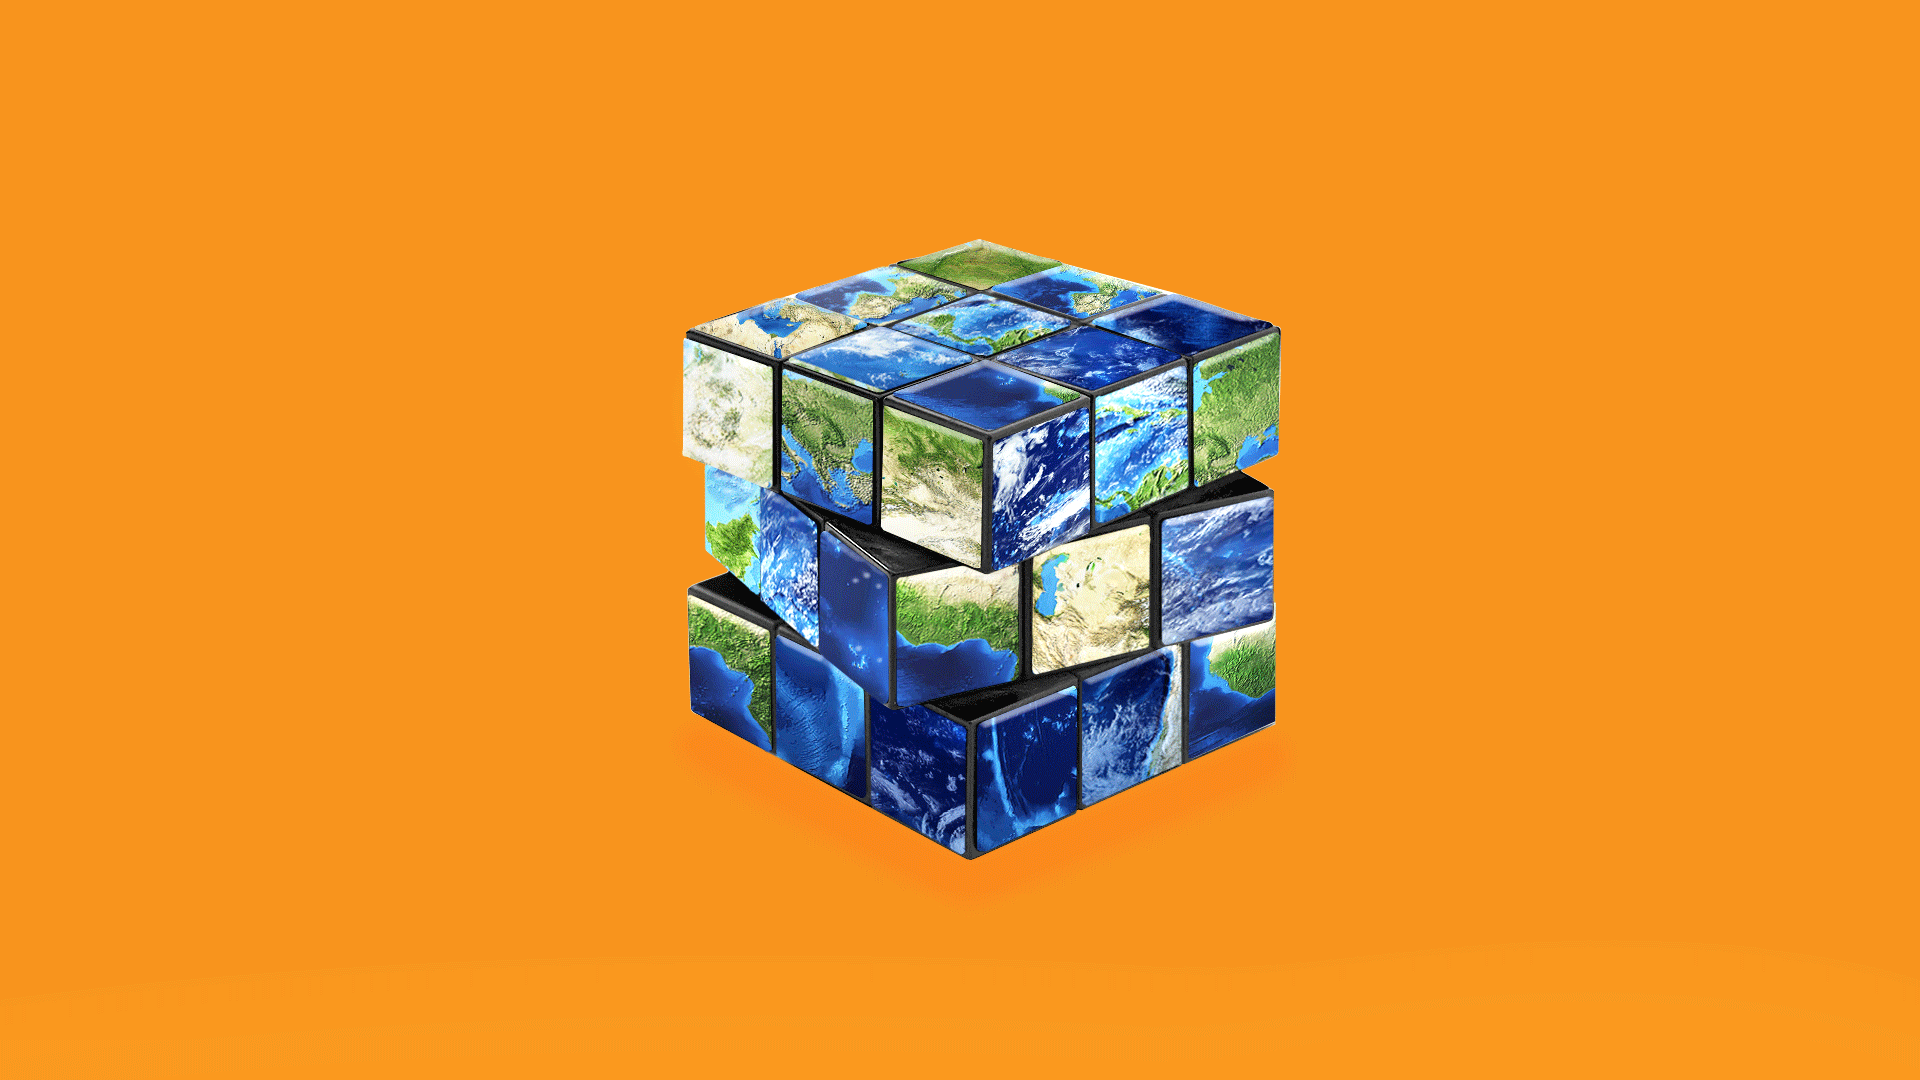 The world as a rubik's cube.